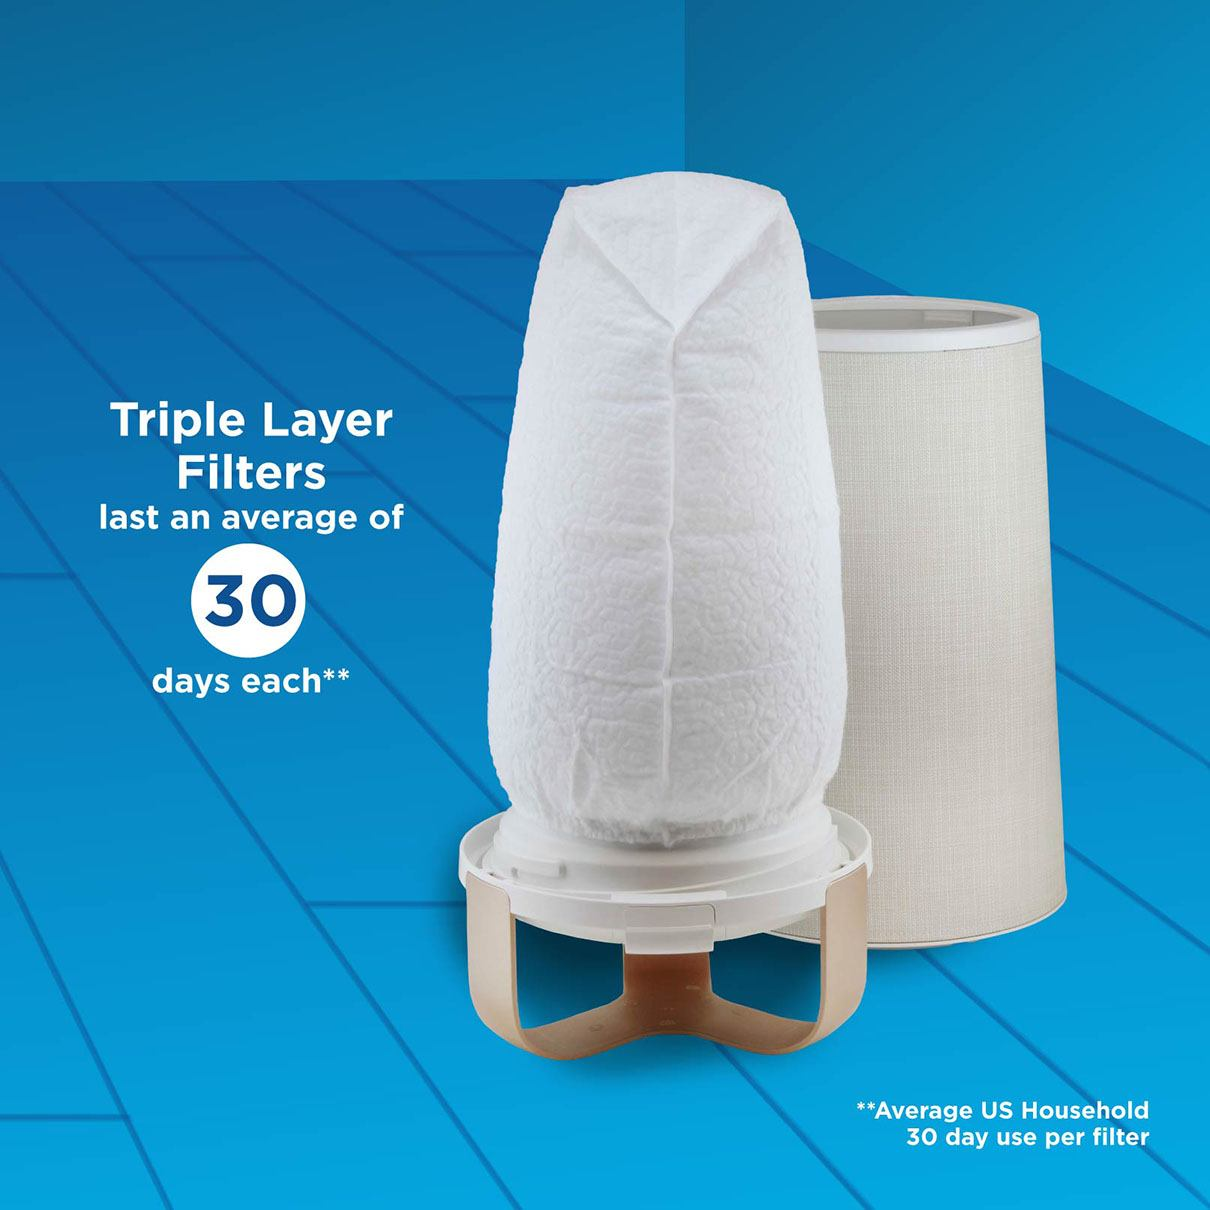 Triple layer filters last an average of 30 days